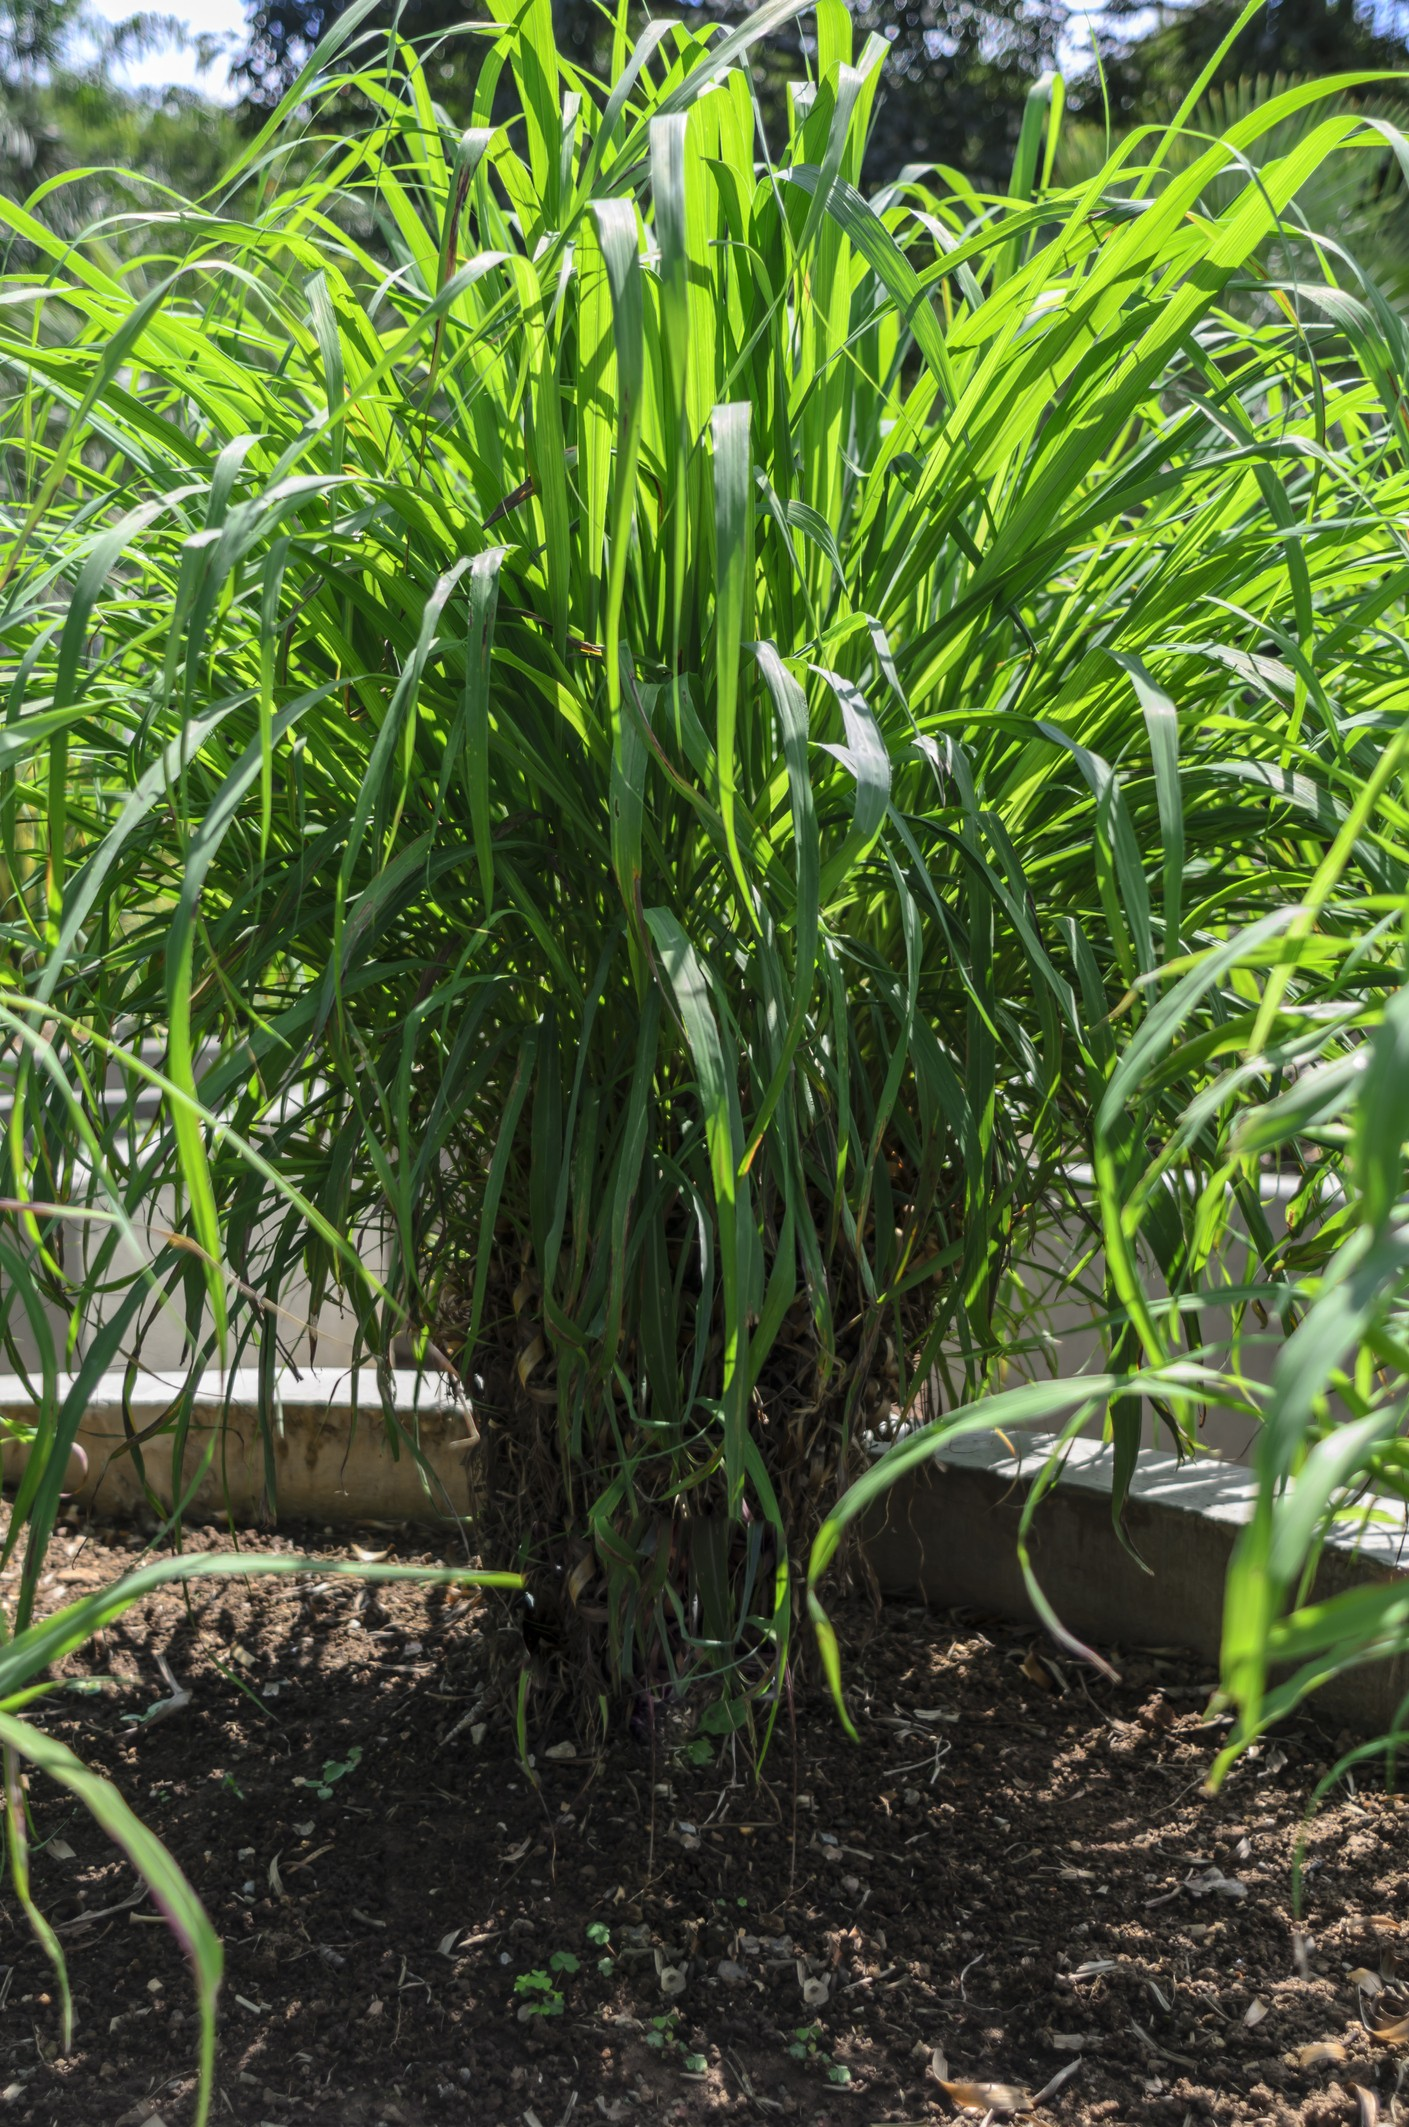 The citronella, scientifically known as Cymbopogon nardus or Cymbopogon winterianus, is a medicinal plant with repellent properties for insects, flavoring, bactericidal and soothing, and is widely used in the manufacture of cosmetics.This plant can be gr (Foto: Getty Images)